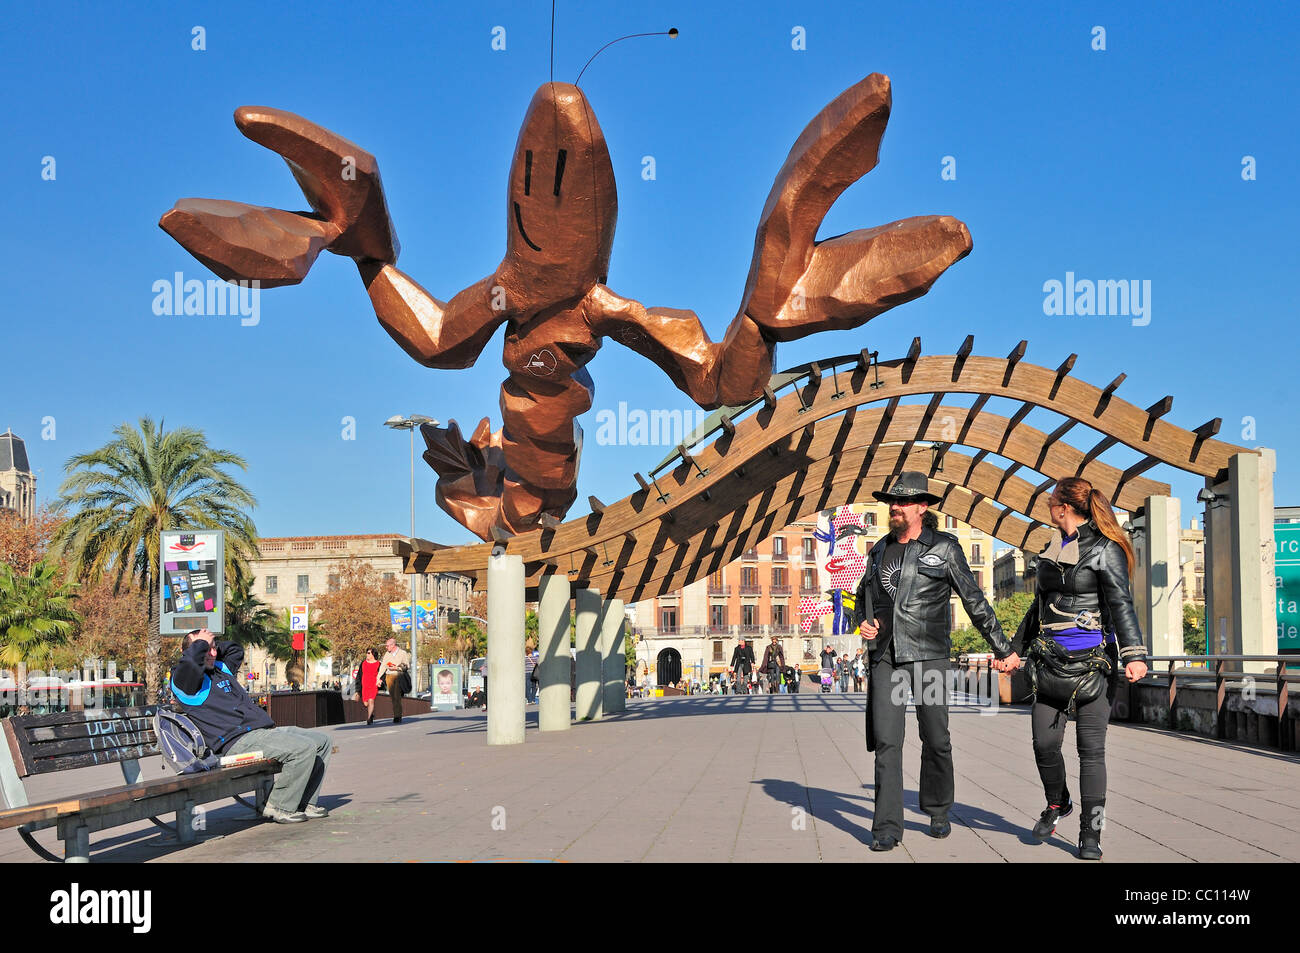 Barcelona spain large lobster gambrinus by xavier for Xavier mariscal